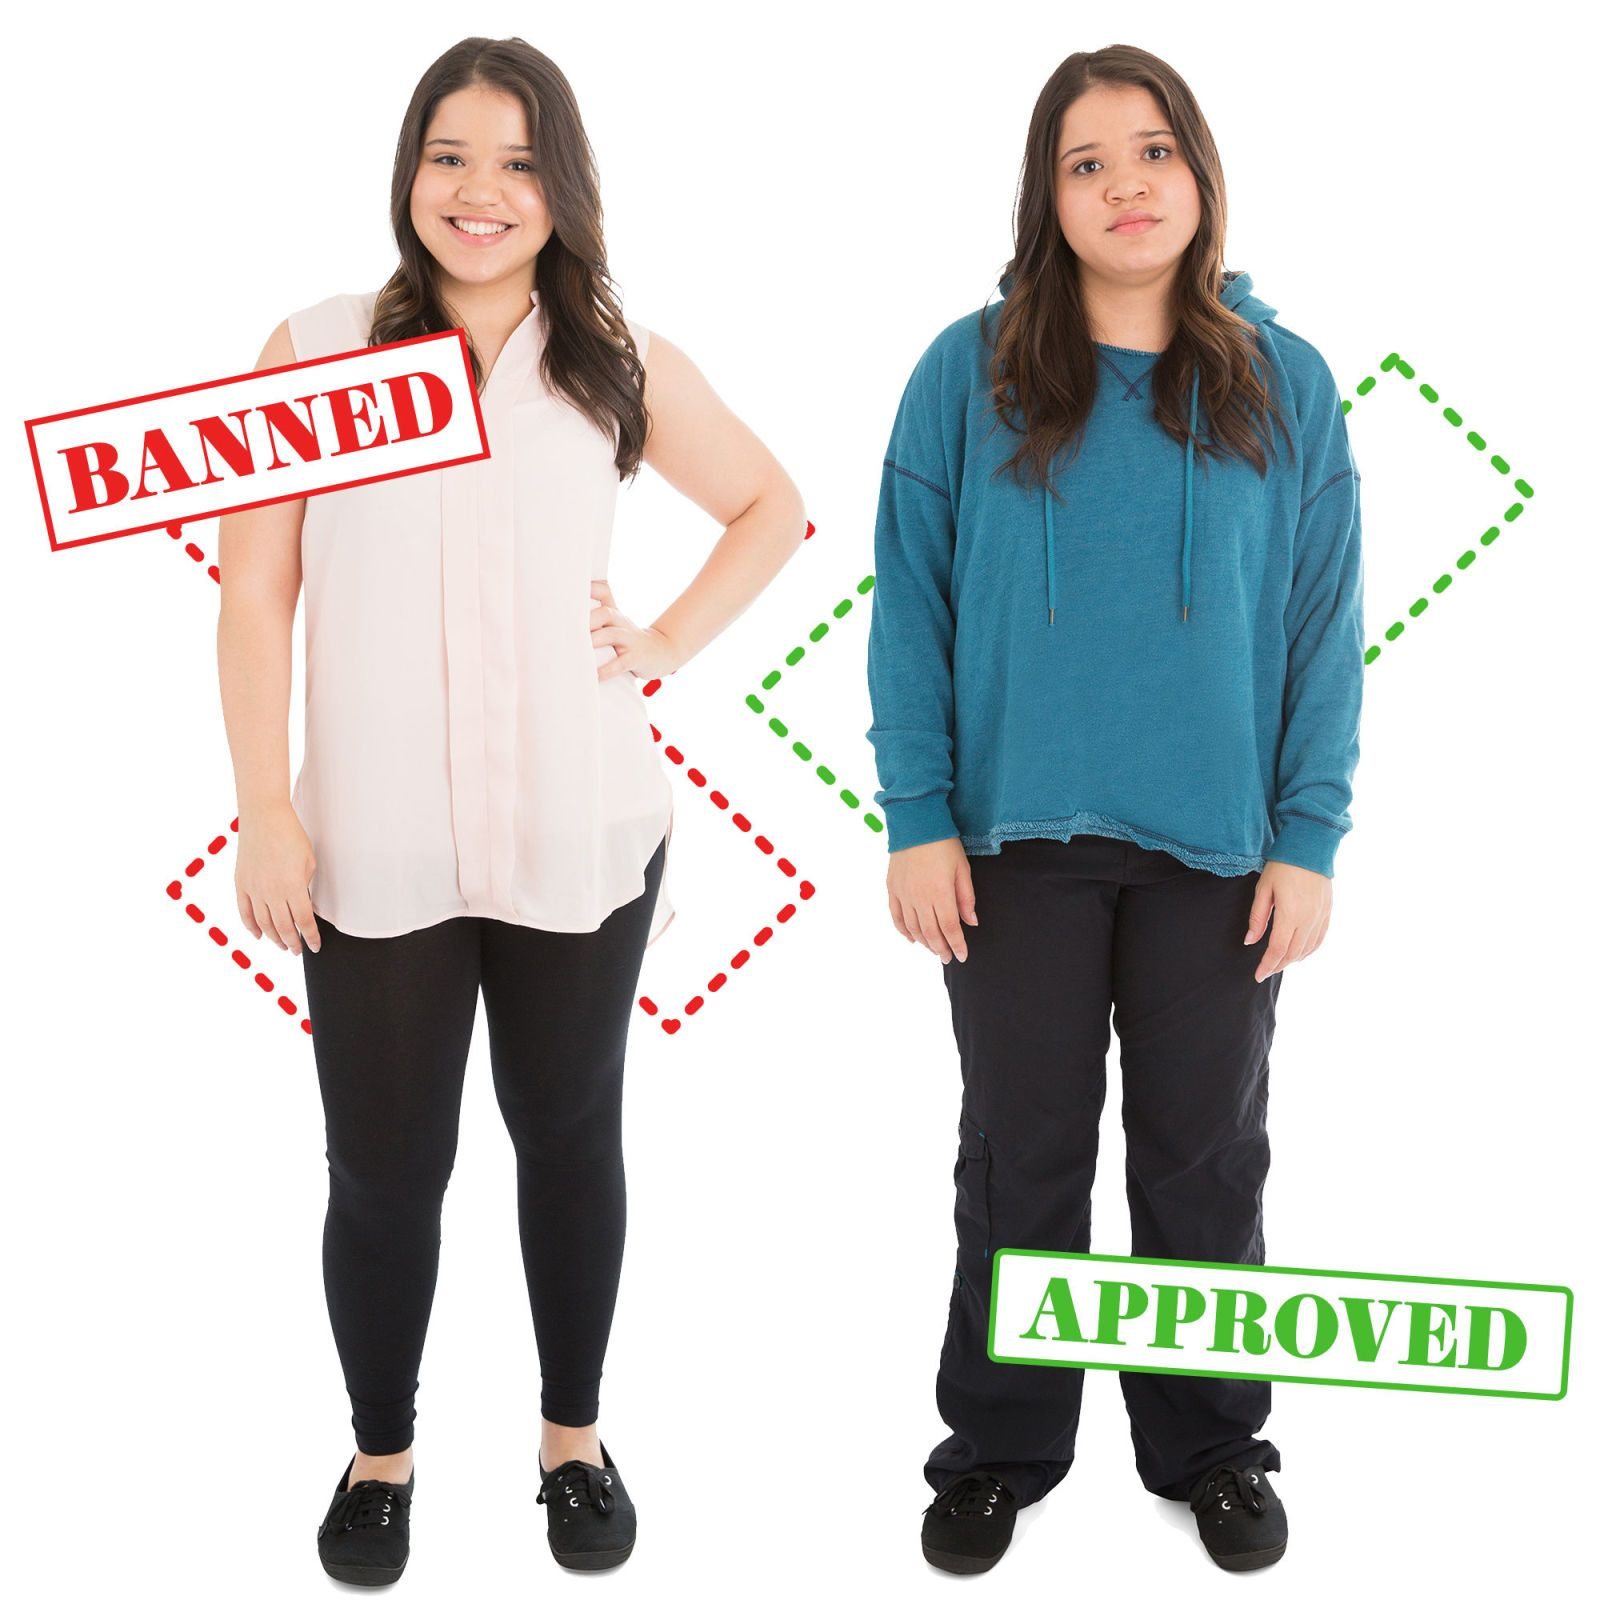 10 Banned Vs. Approved Outfits That Show How Ridiculous